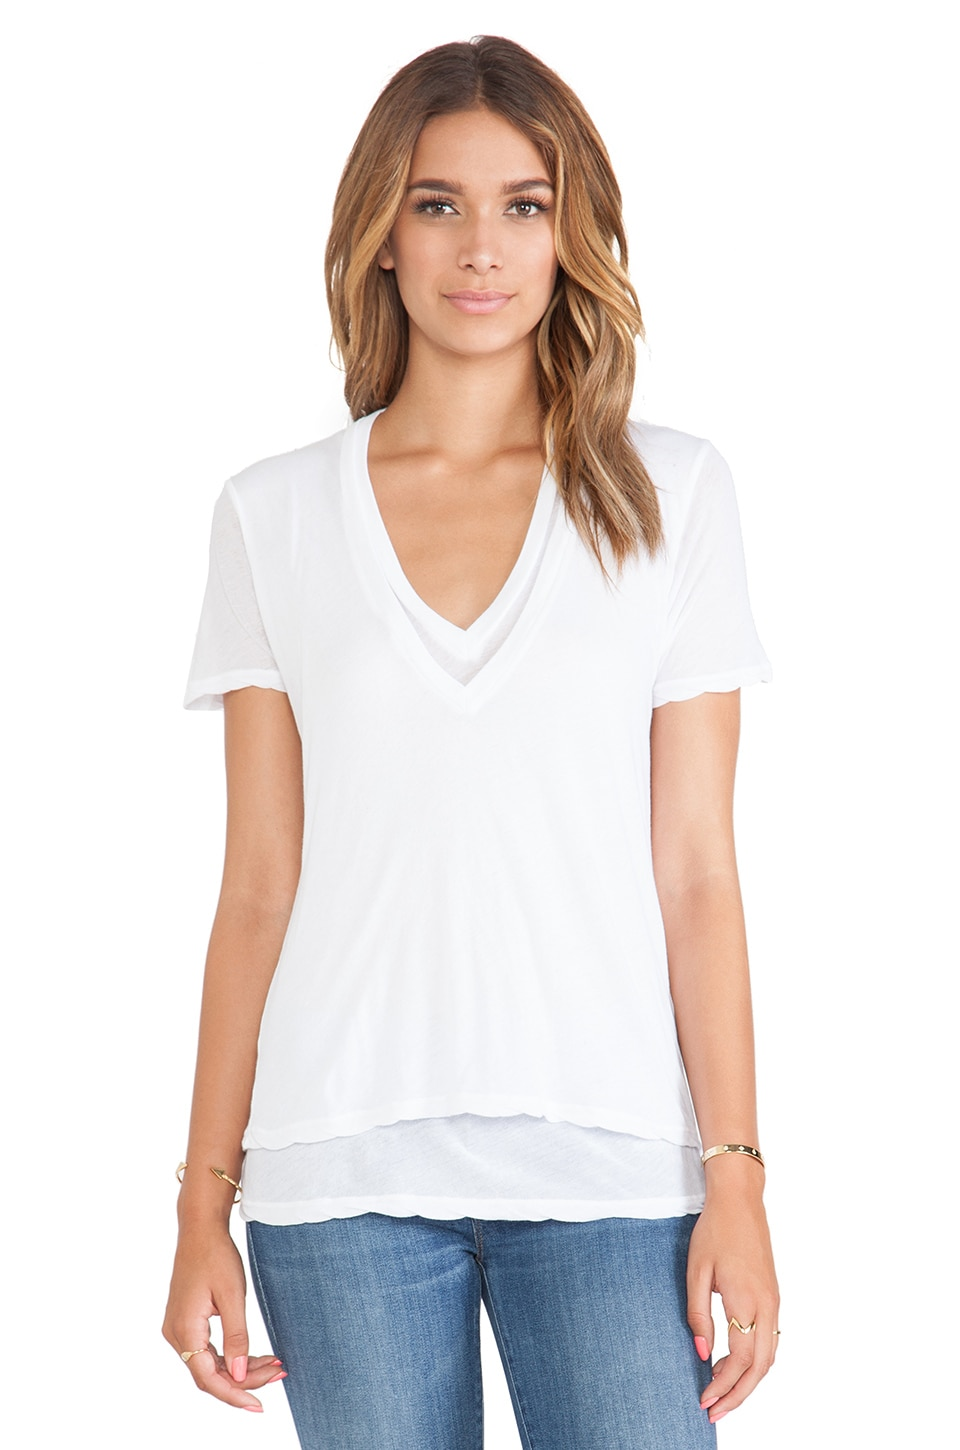 MONROW Heather Grey Tissue Double V Neck in White